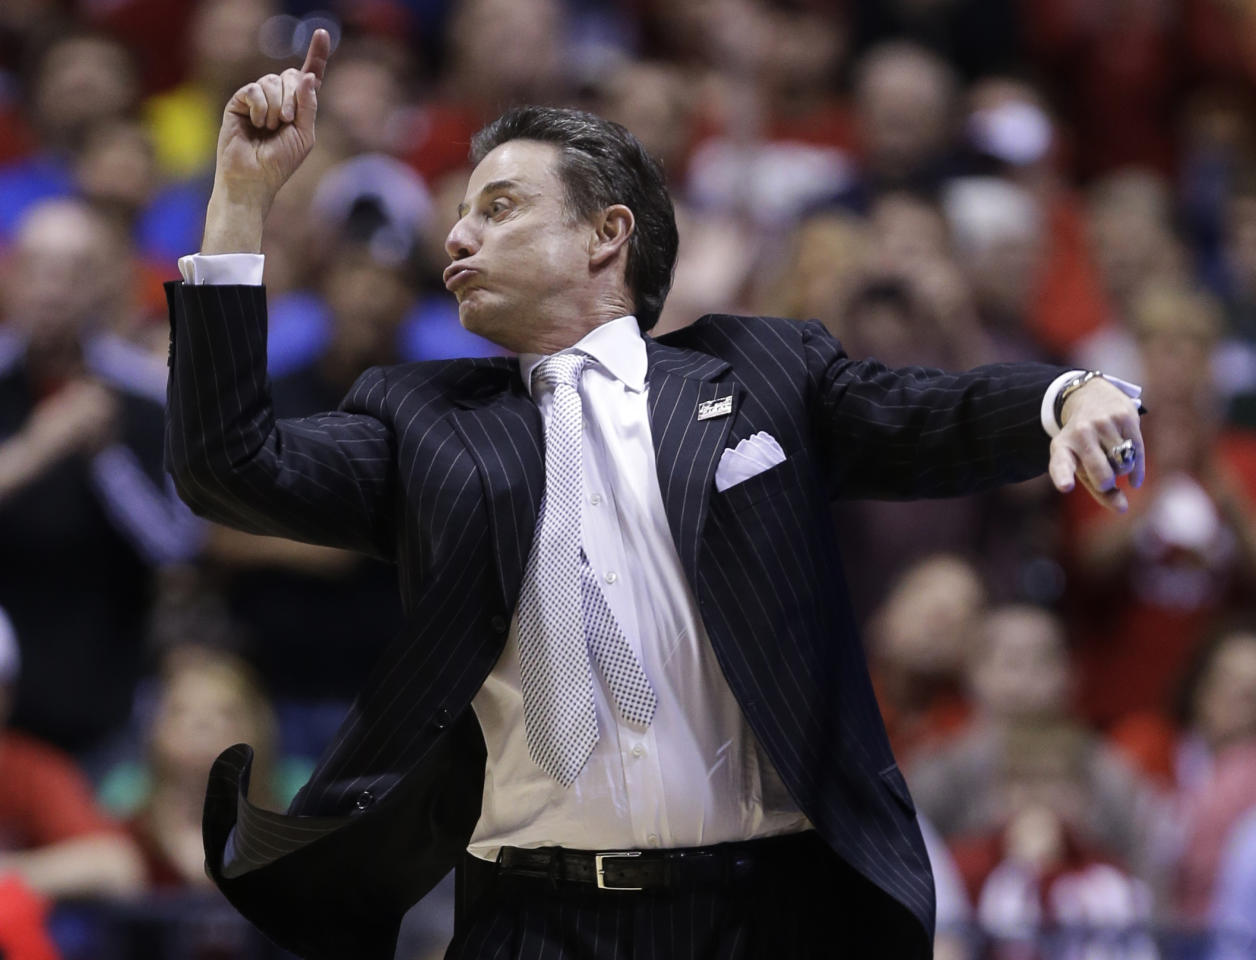 Louisville head coach Rick Pitino directs his team during the second half of the Midwest Regional final against Duke in the NCAA college basketball tournament, Sunday, March 31, 2013, in Indianapolis. Louisville won 85-63 to advance to the Final Four. (AP Photo/Michael Conroy)